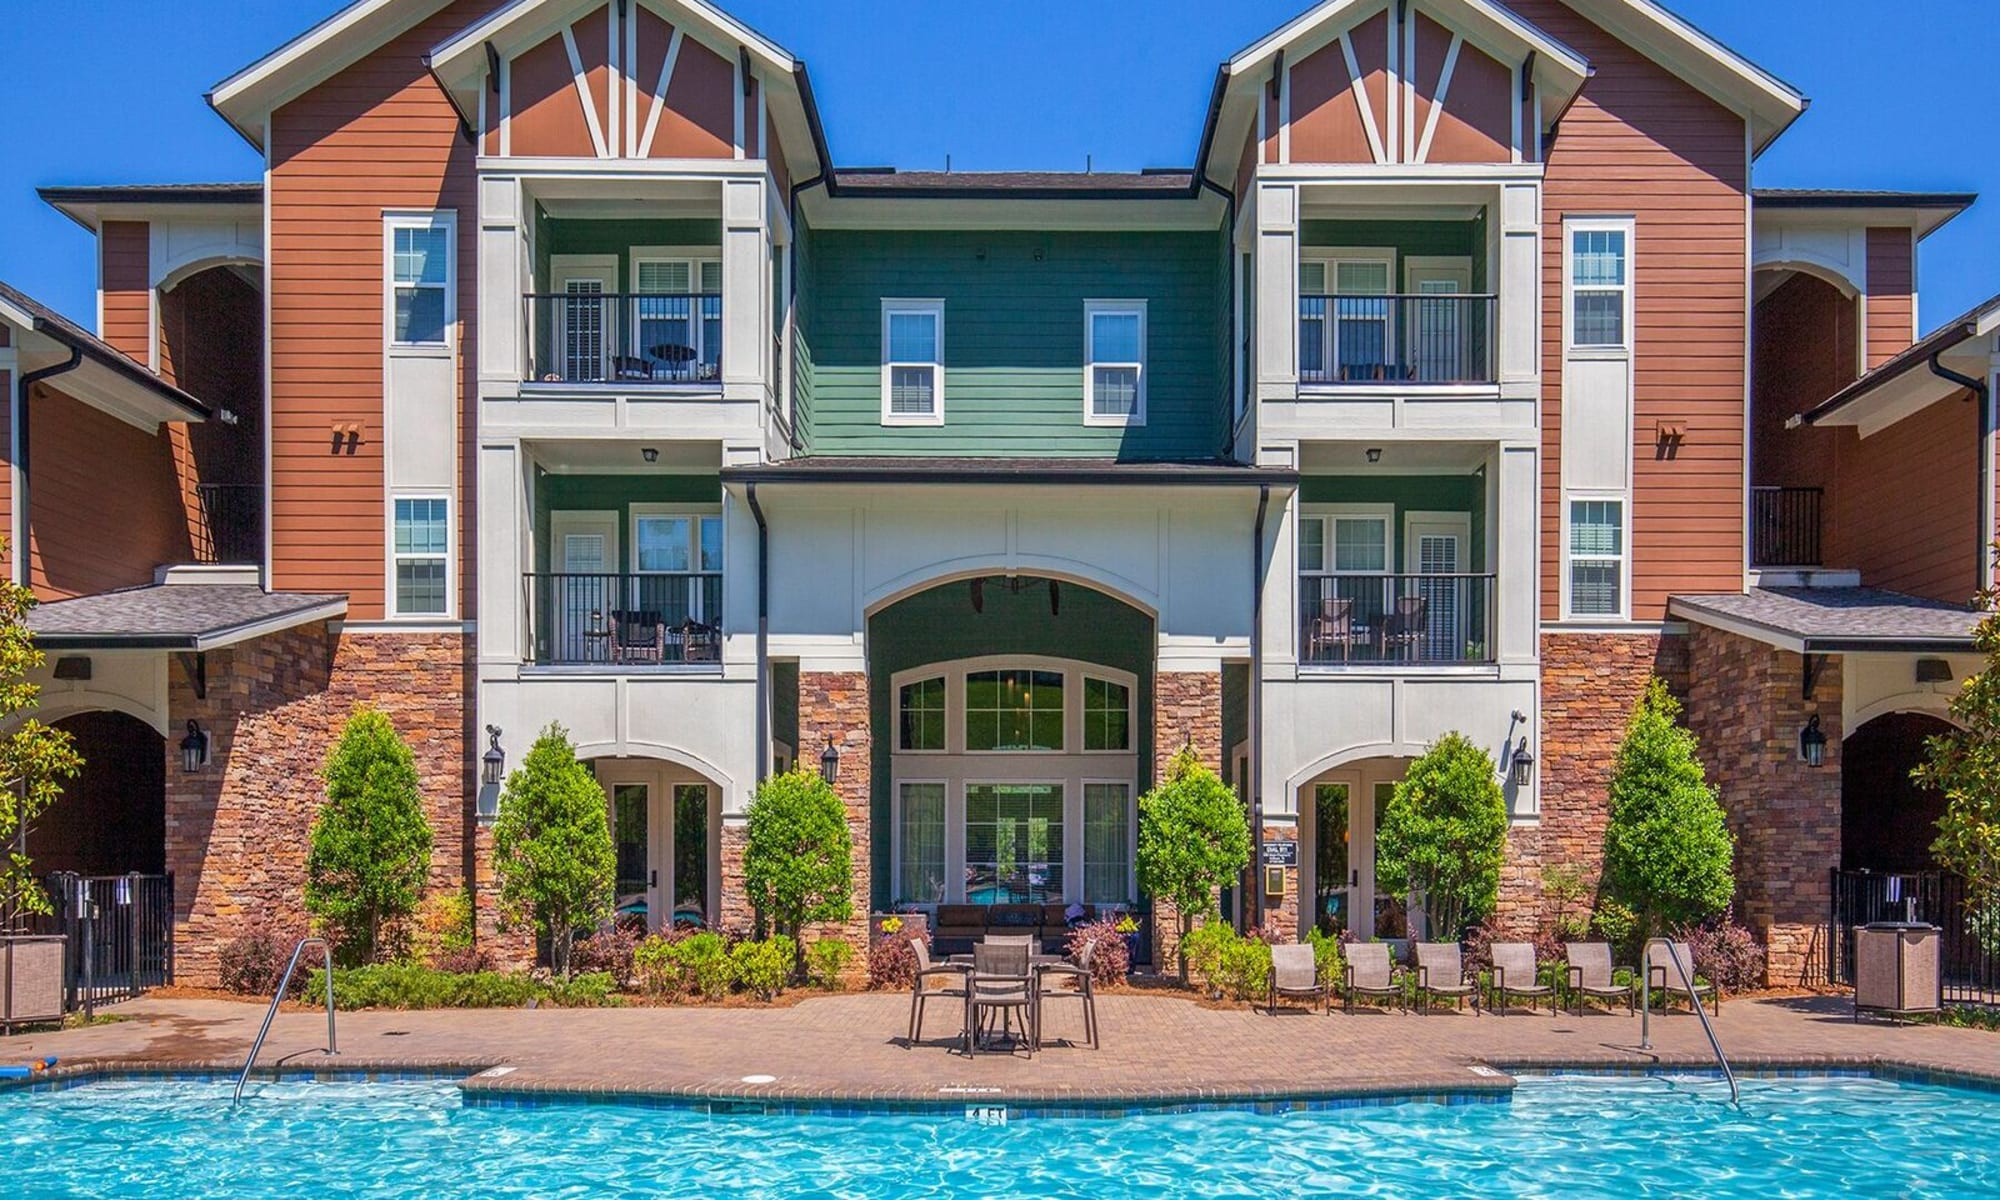 Apartments at Integra Hills Preserve Apartments in Ooltewah, Tennessee